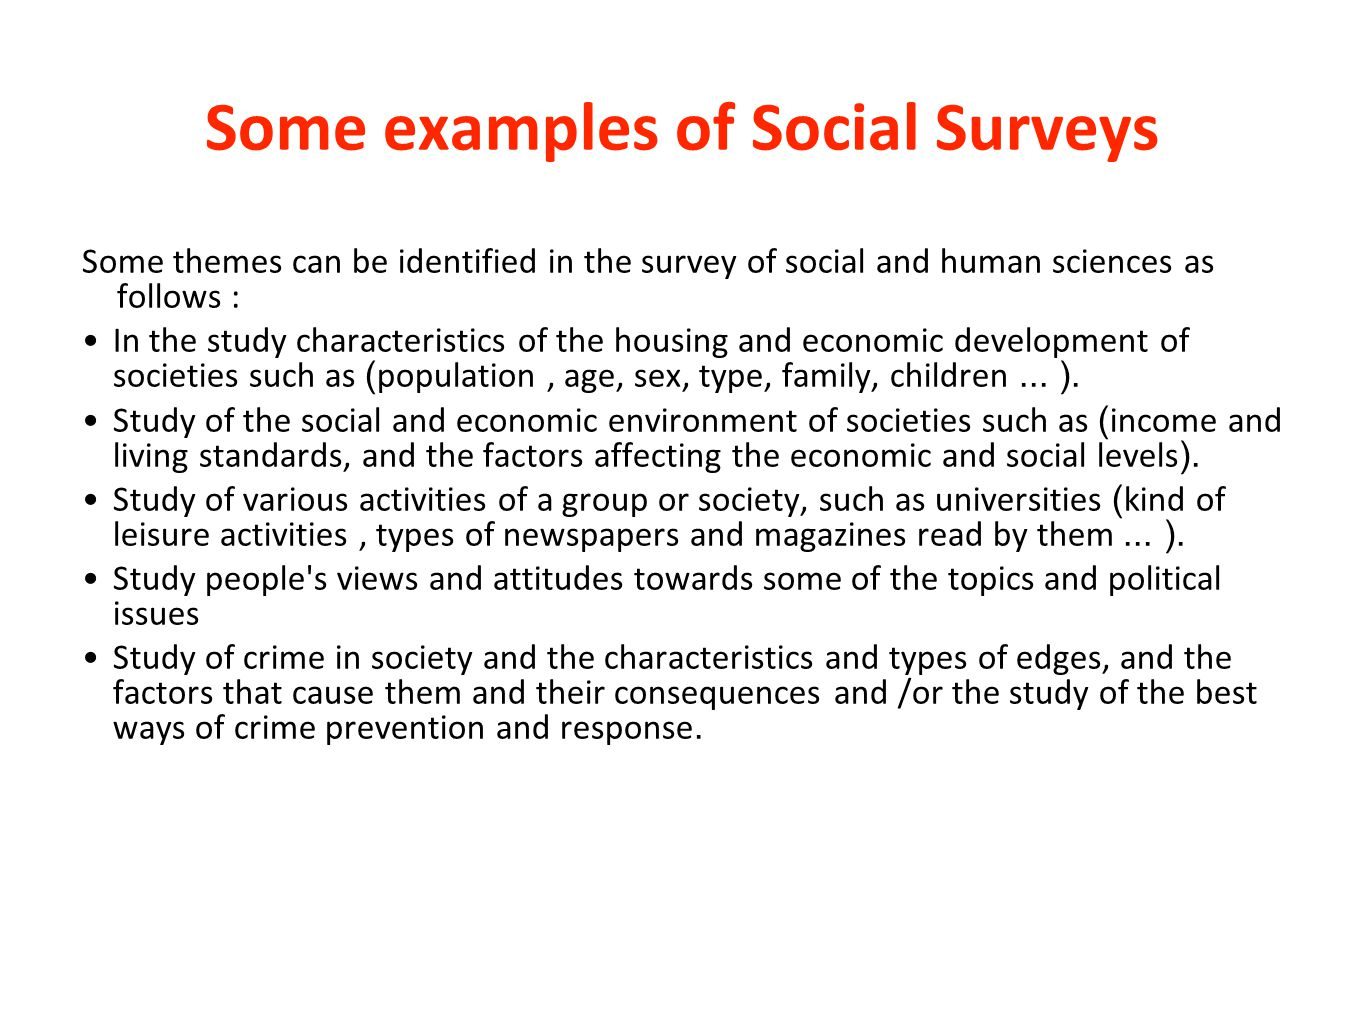 Some examples of Social Surveys